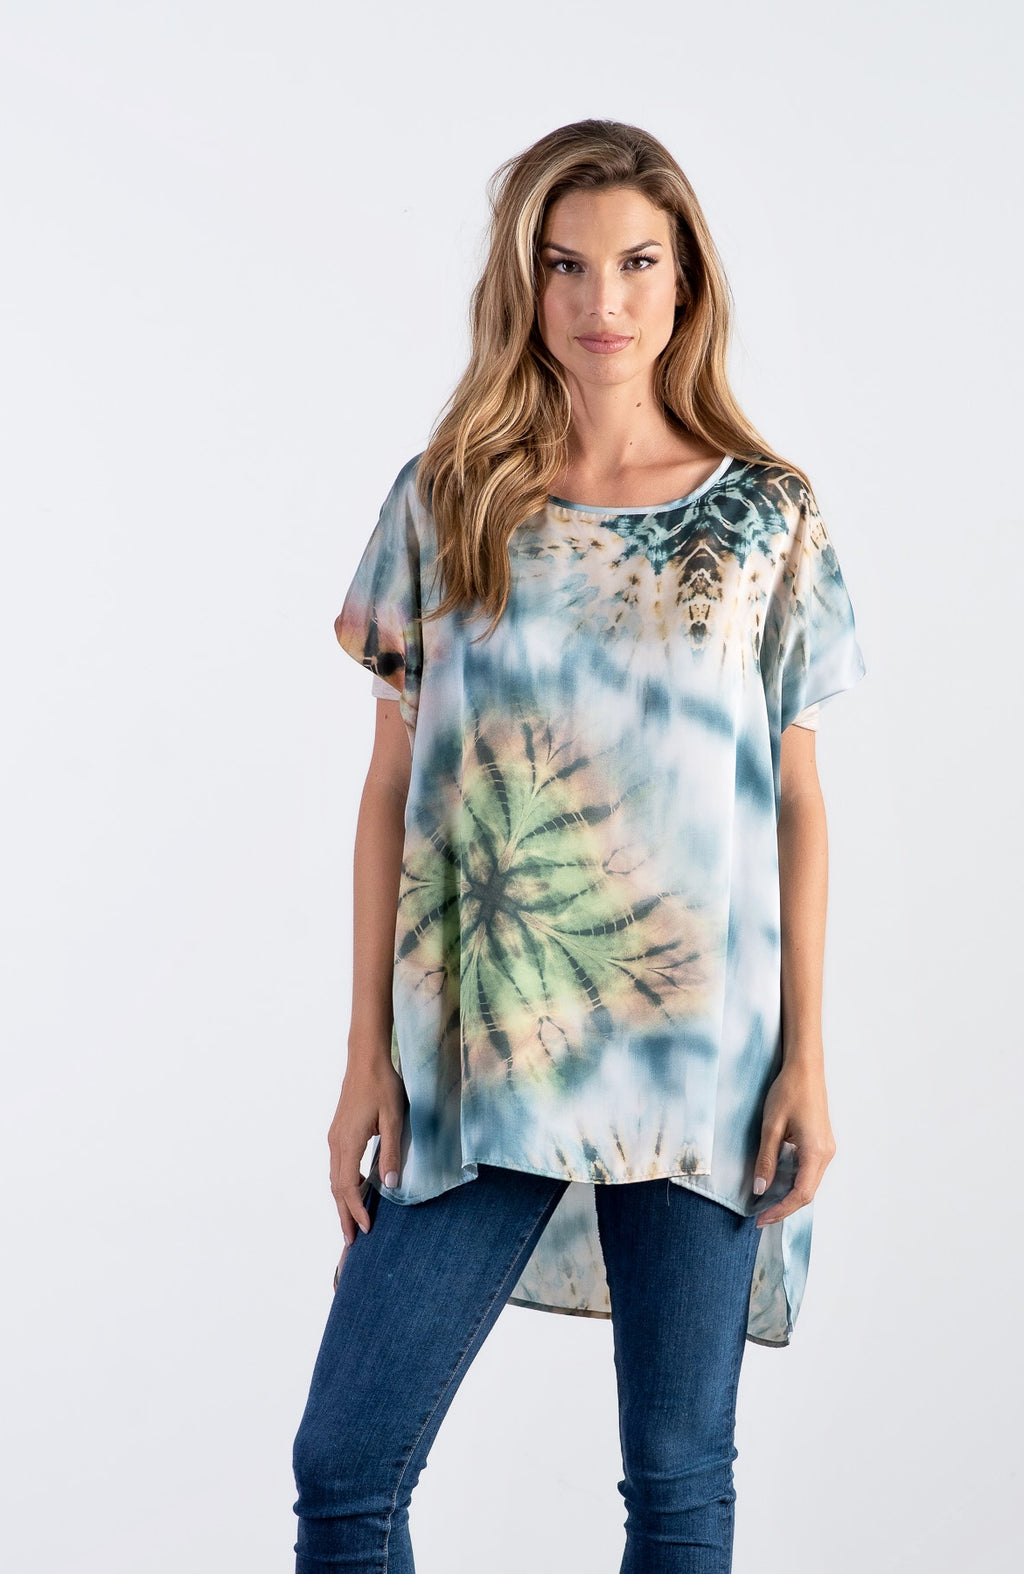 The Mia - Blue Tie Dye Print